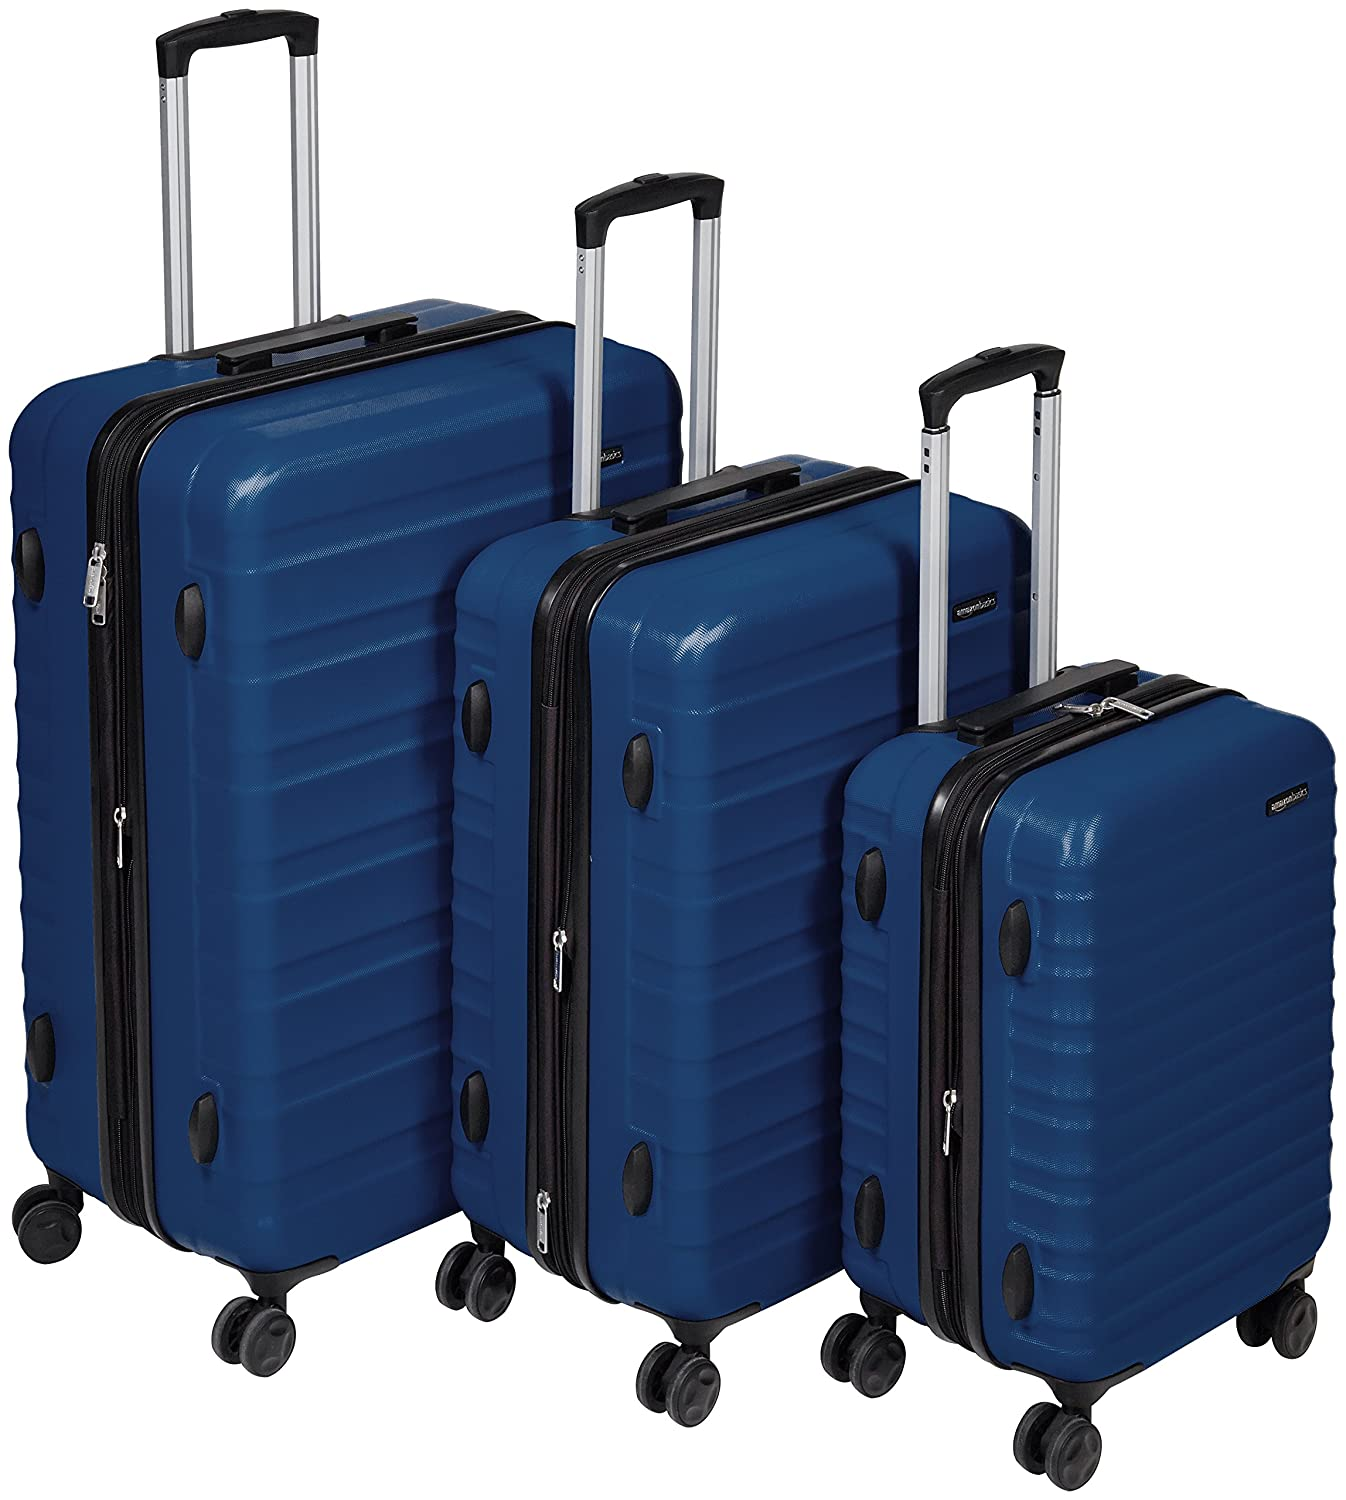 AmazonBasics Hardside Spinner Luggage - 3 Piece Set (20, 24, 28) 24 28) Black N989